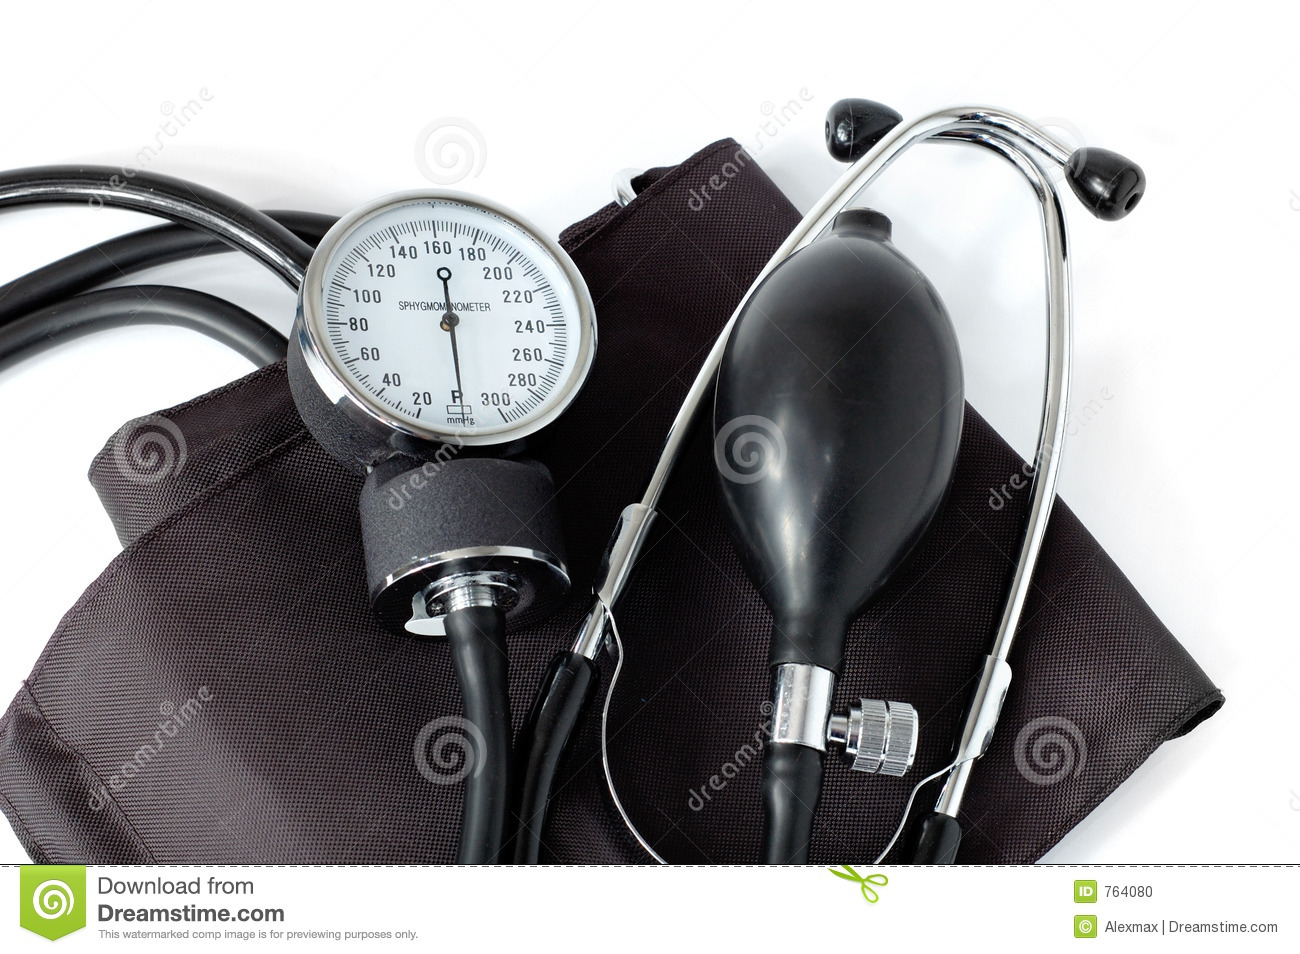 equaline blood pressure monitor instructions